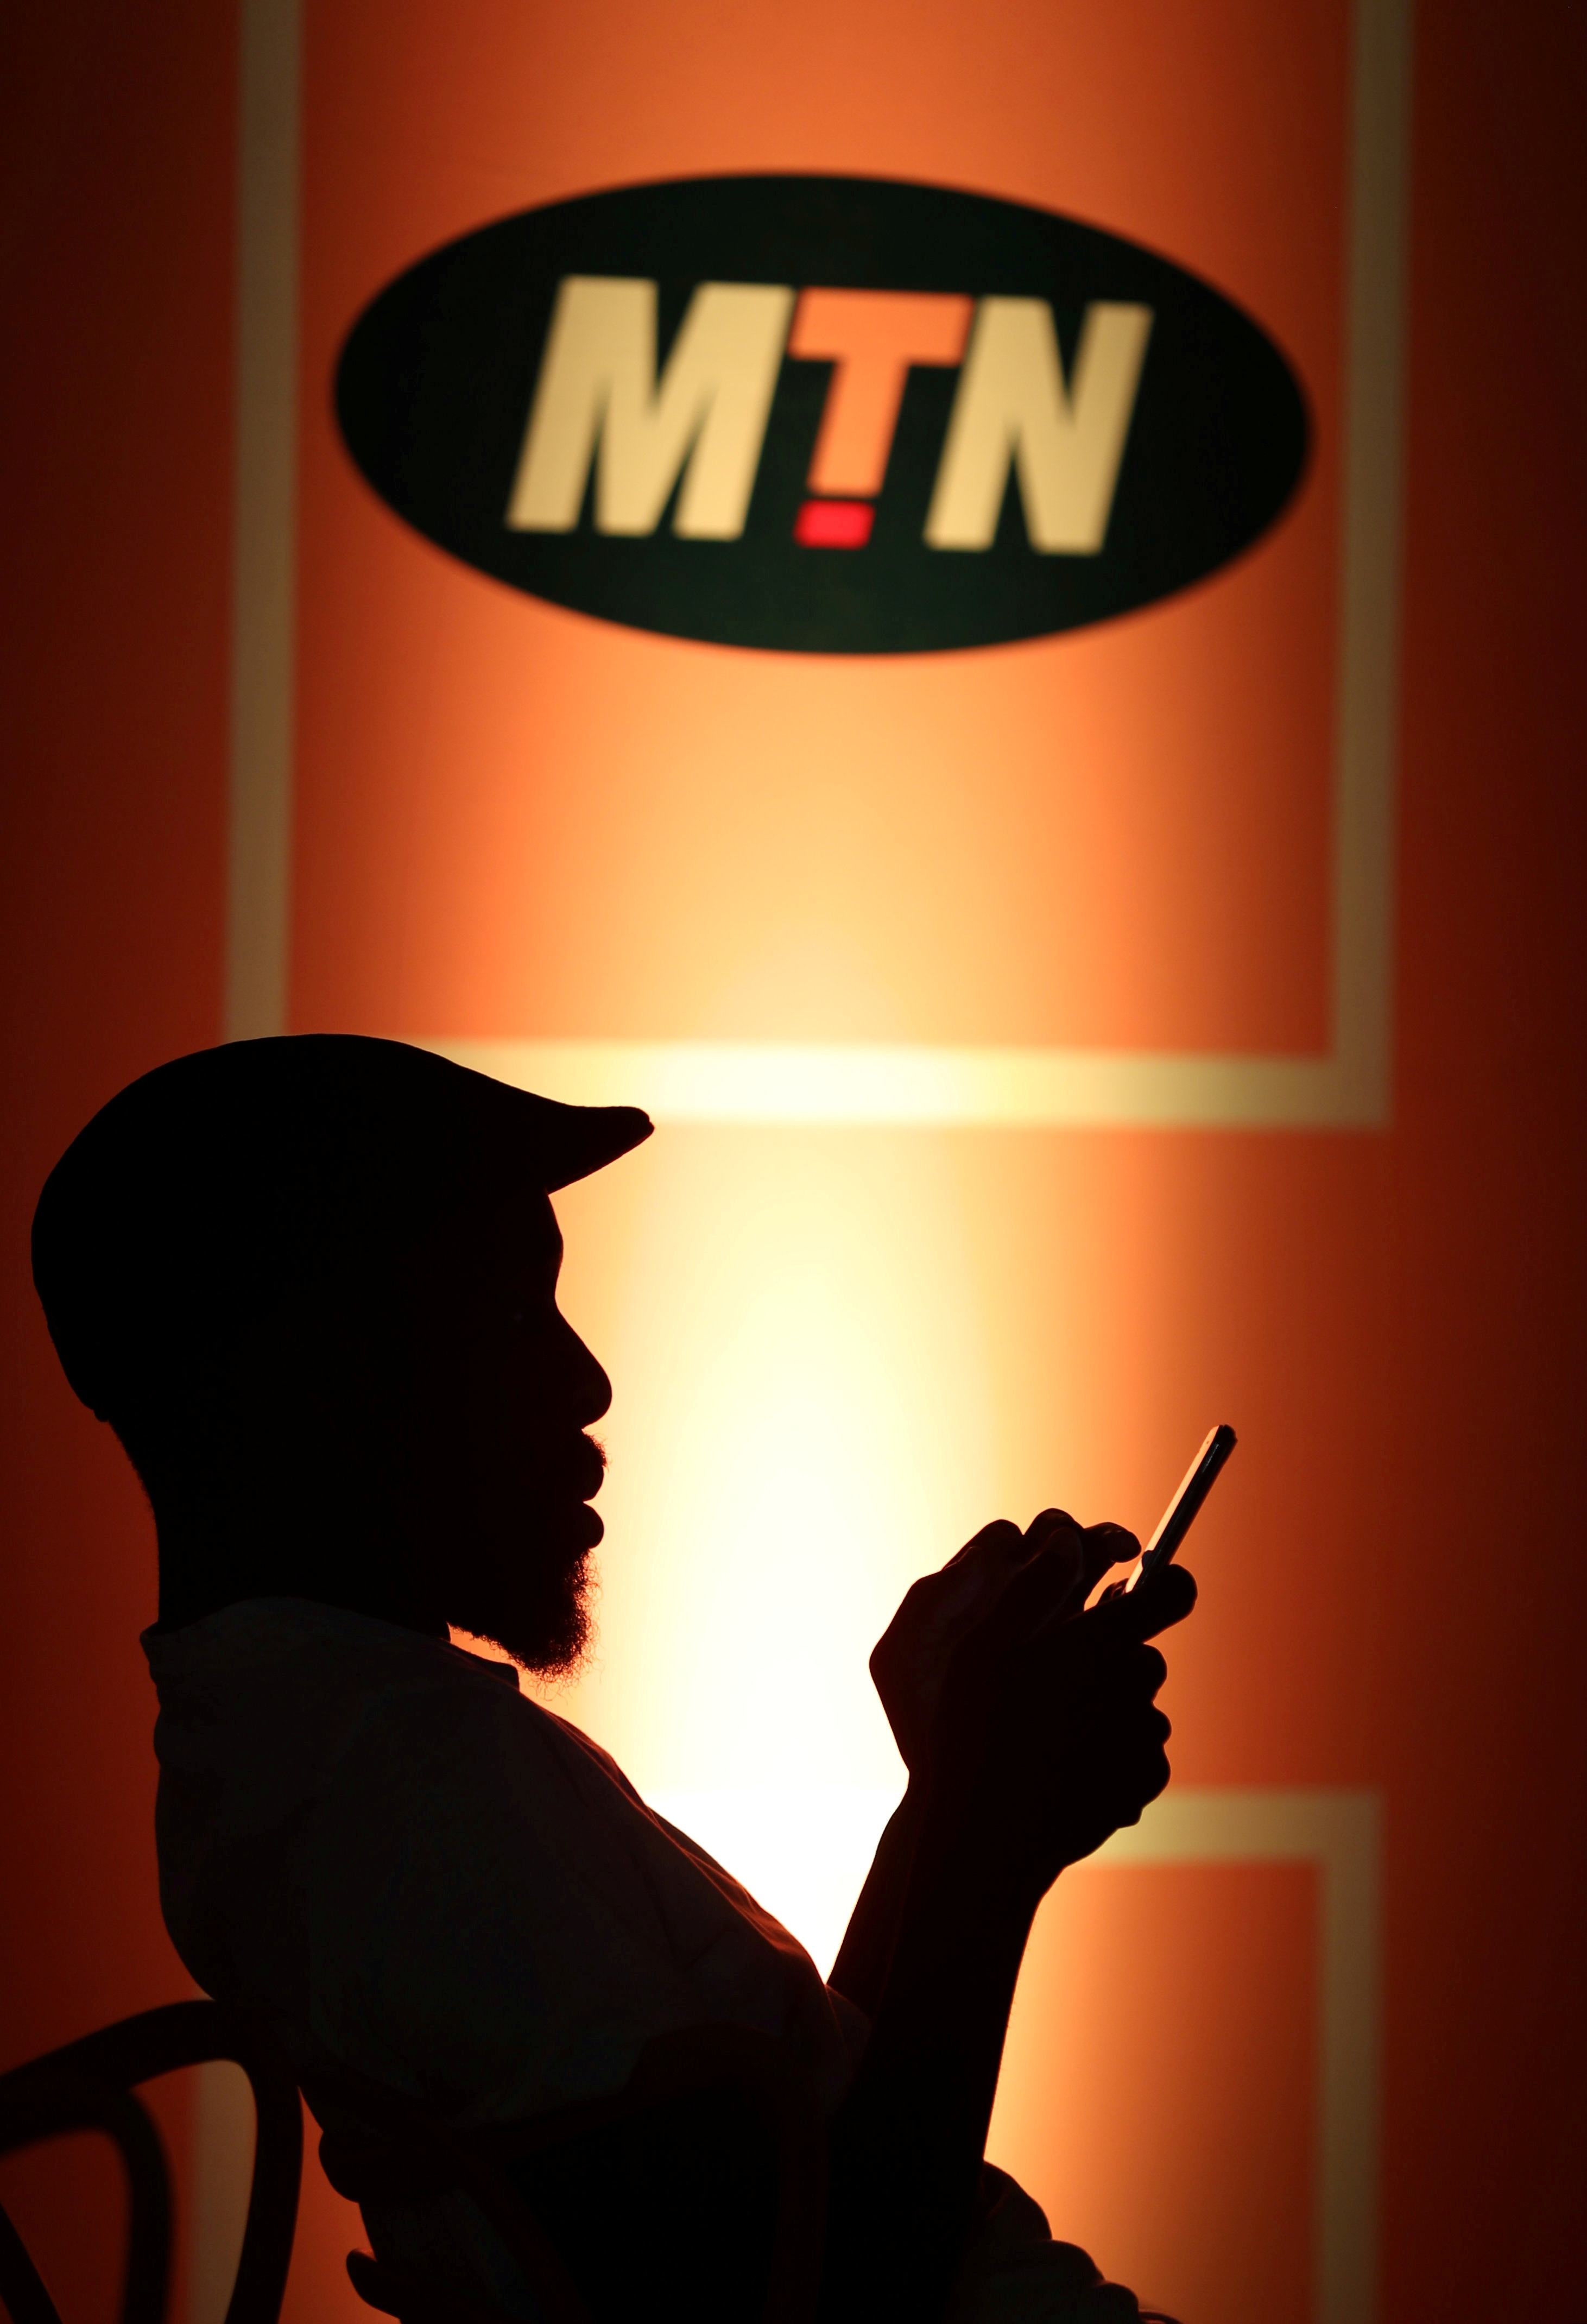 A guest types on his mobile phone as he sits below an MTN logo during the launch of its mobile money service in Johannesburg, South Africa, January 30, 2020. REUTERS/Siphiwe Sibeko